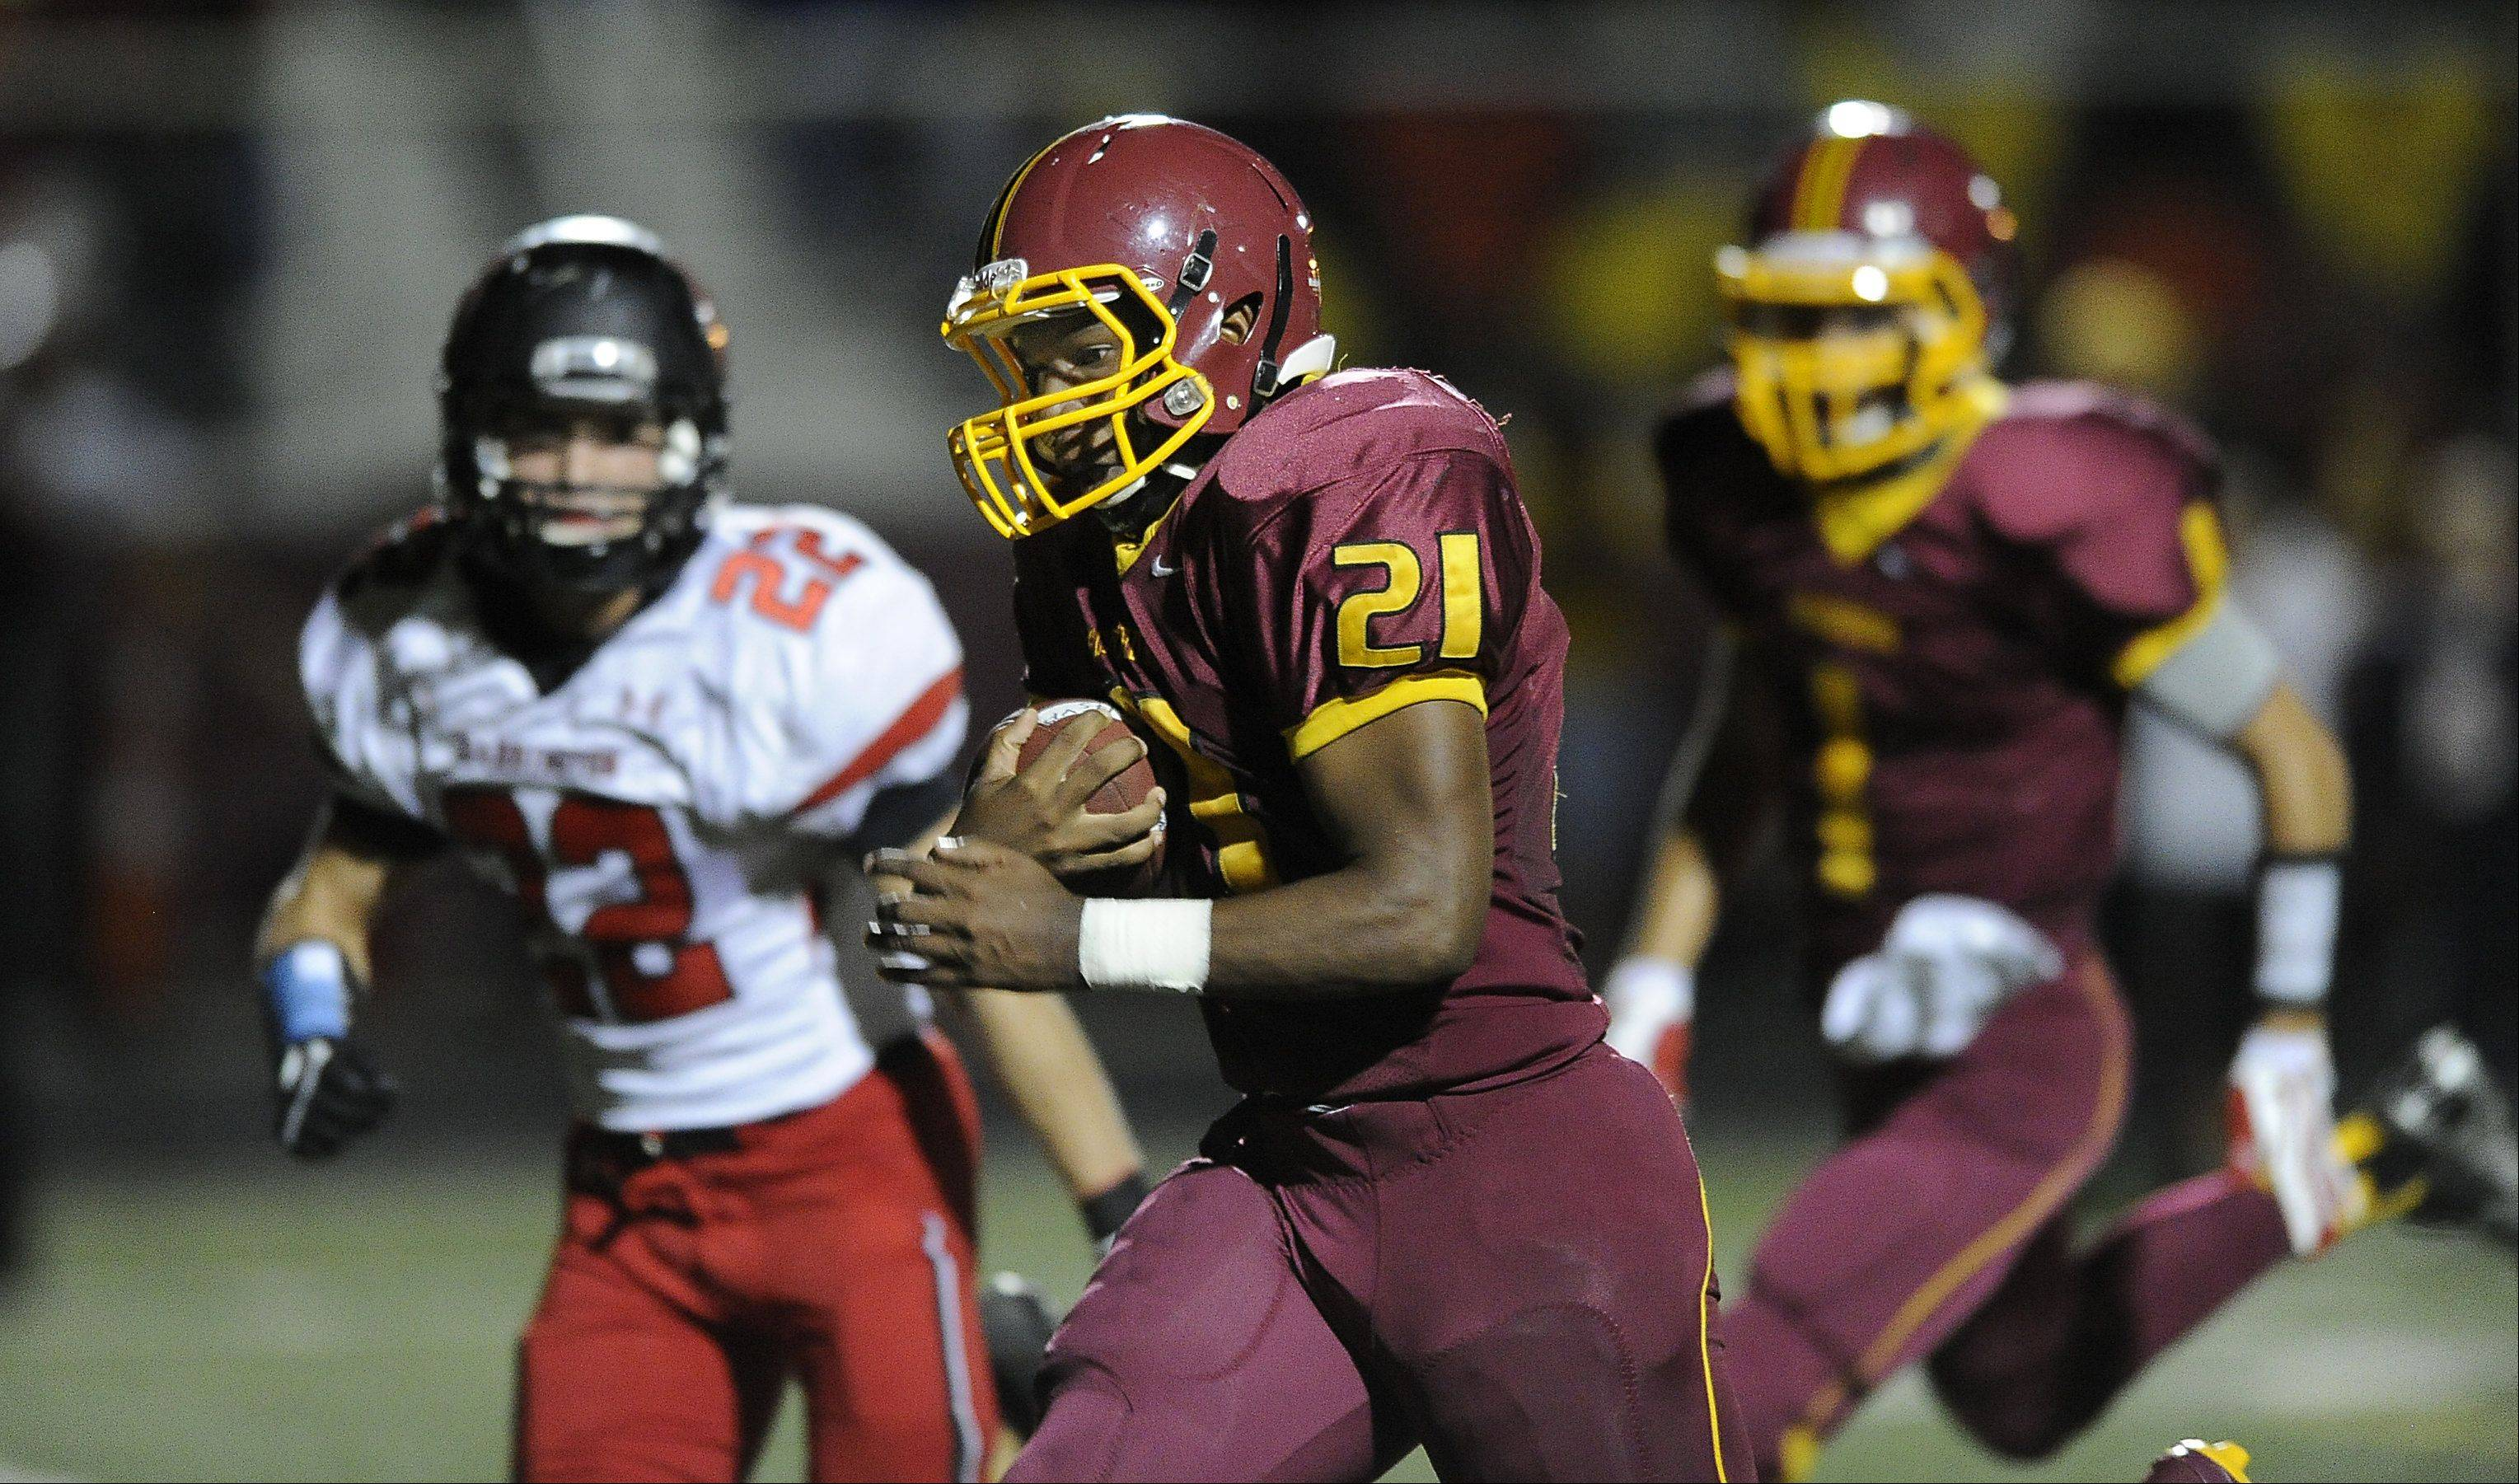 Images: Schaumburg vs. Barrington football